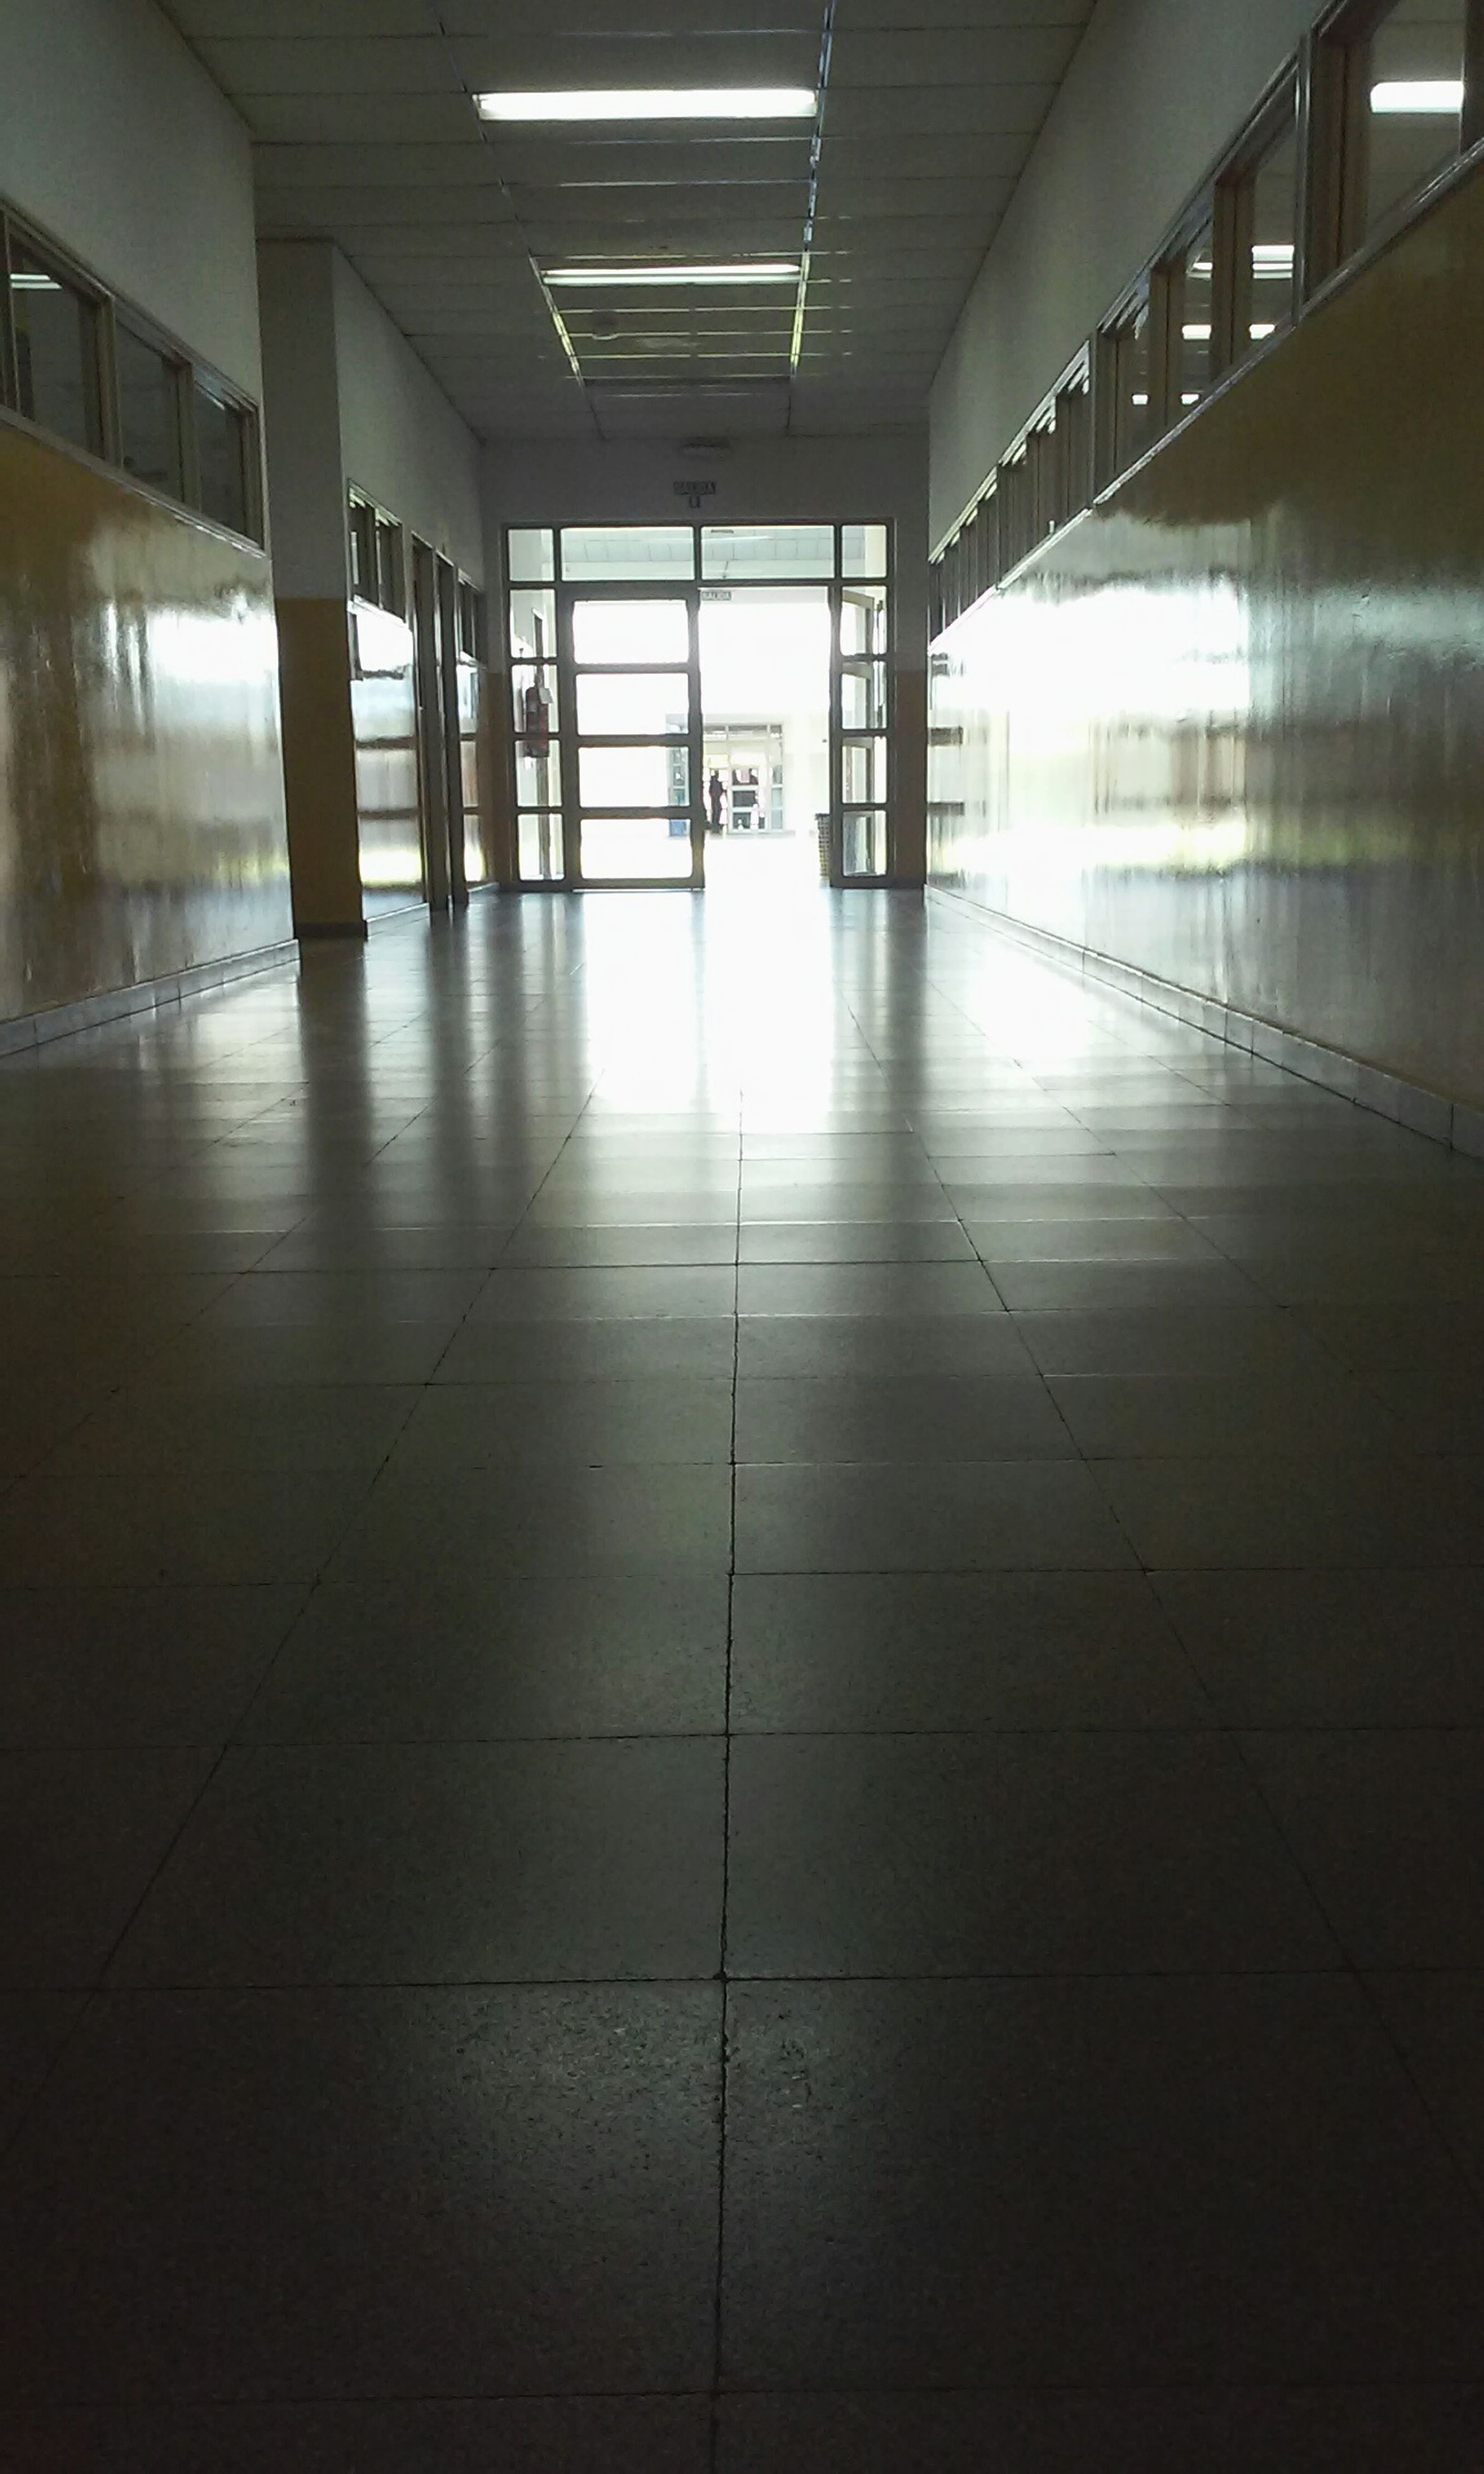 indoors, empty, corridor, the way forward, one person, architecture, day, full length, men, people